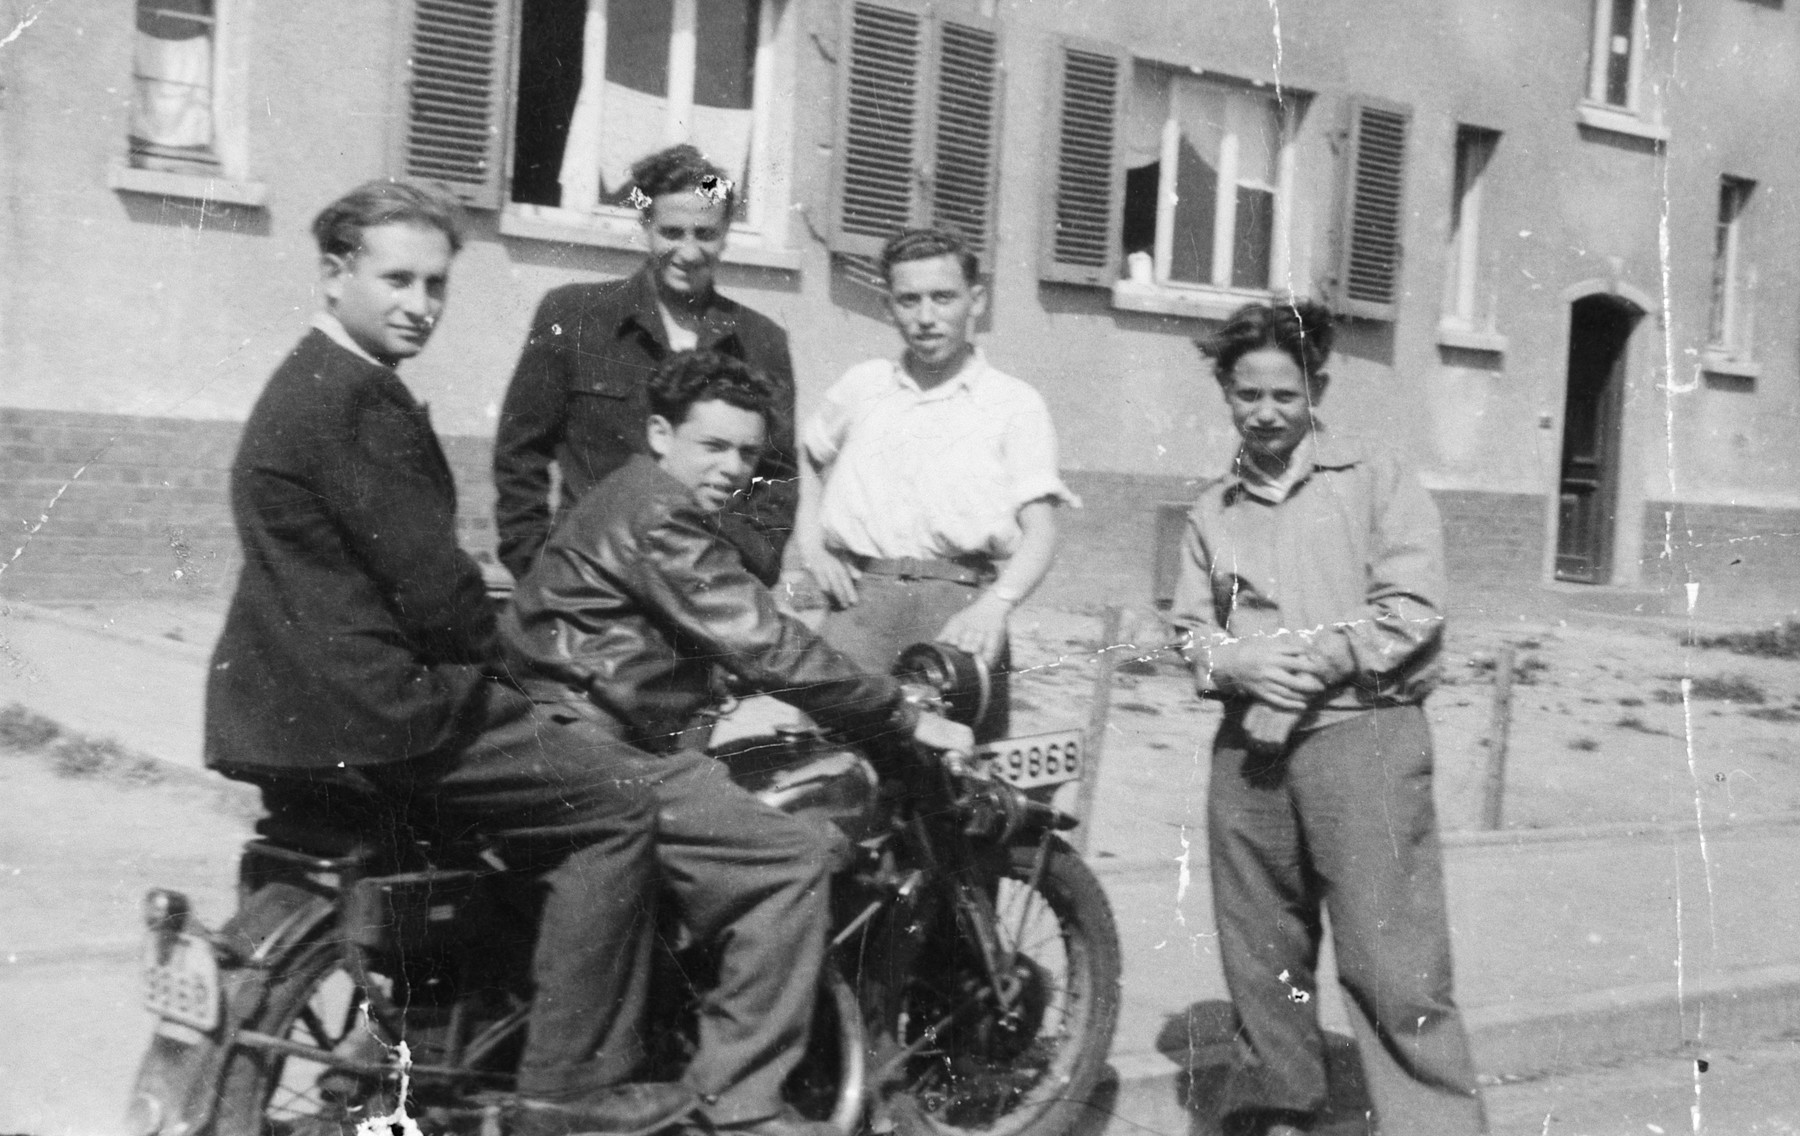 Five young men pose on or next to a motorcycle in the Zeilsheim displaced persons' camp.  Standing second from the left is Chuna Grynbaum.  Alex Herblum is on the motorcycle.